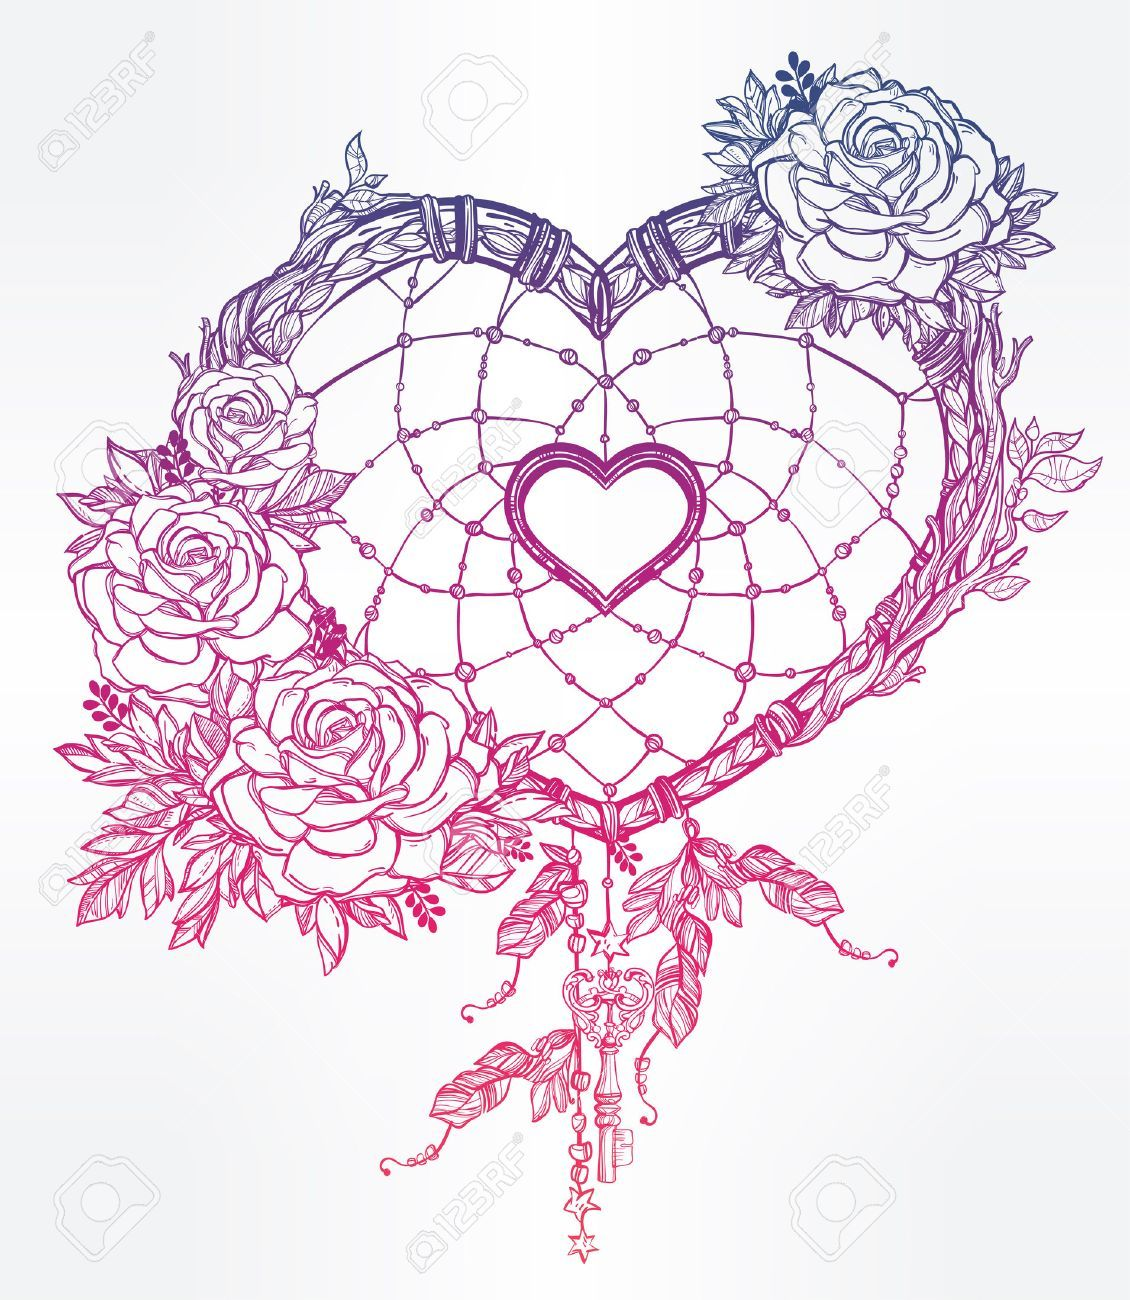 1130x1300 50928180 Hand Drawn Romantic Drawing Of A Heart Shaped Dream